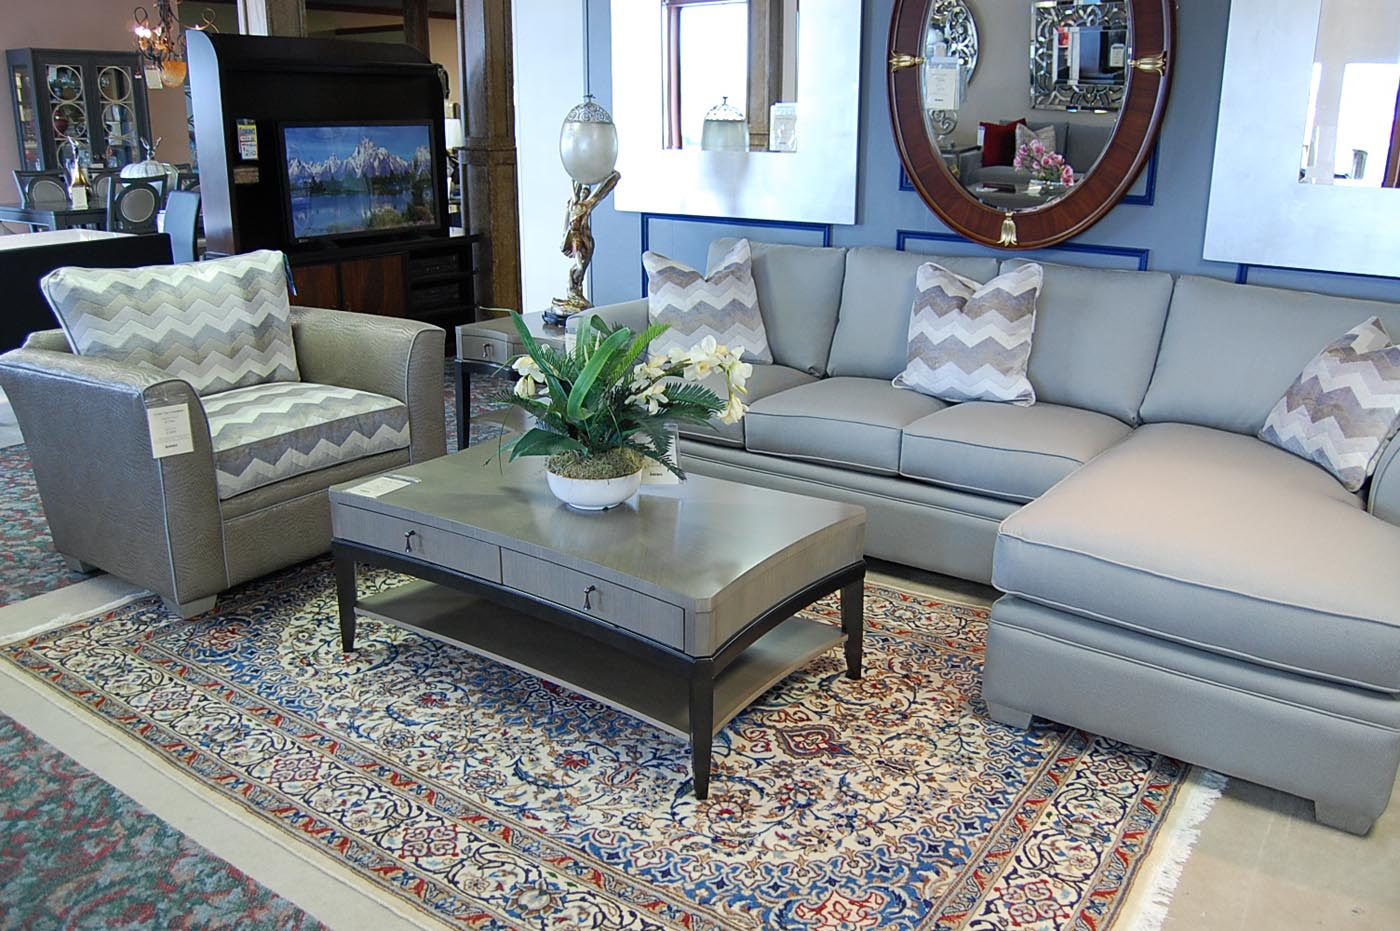 sofas houston sale how to dispose of a sofa bed living room furniture tx luxury